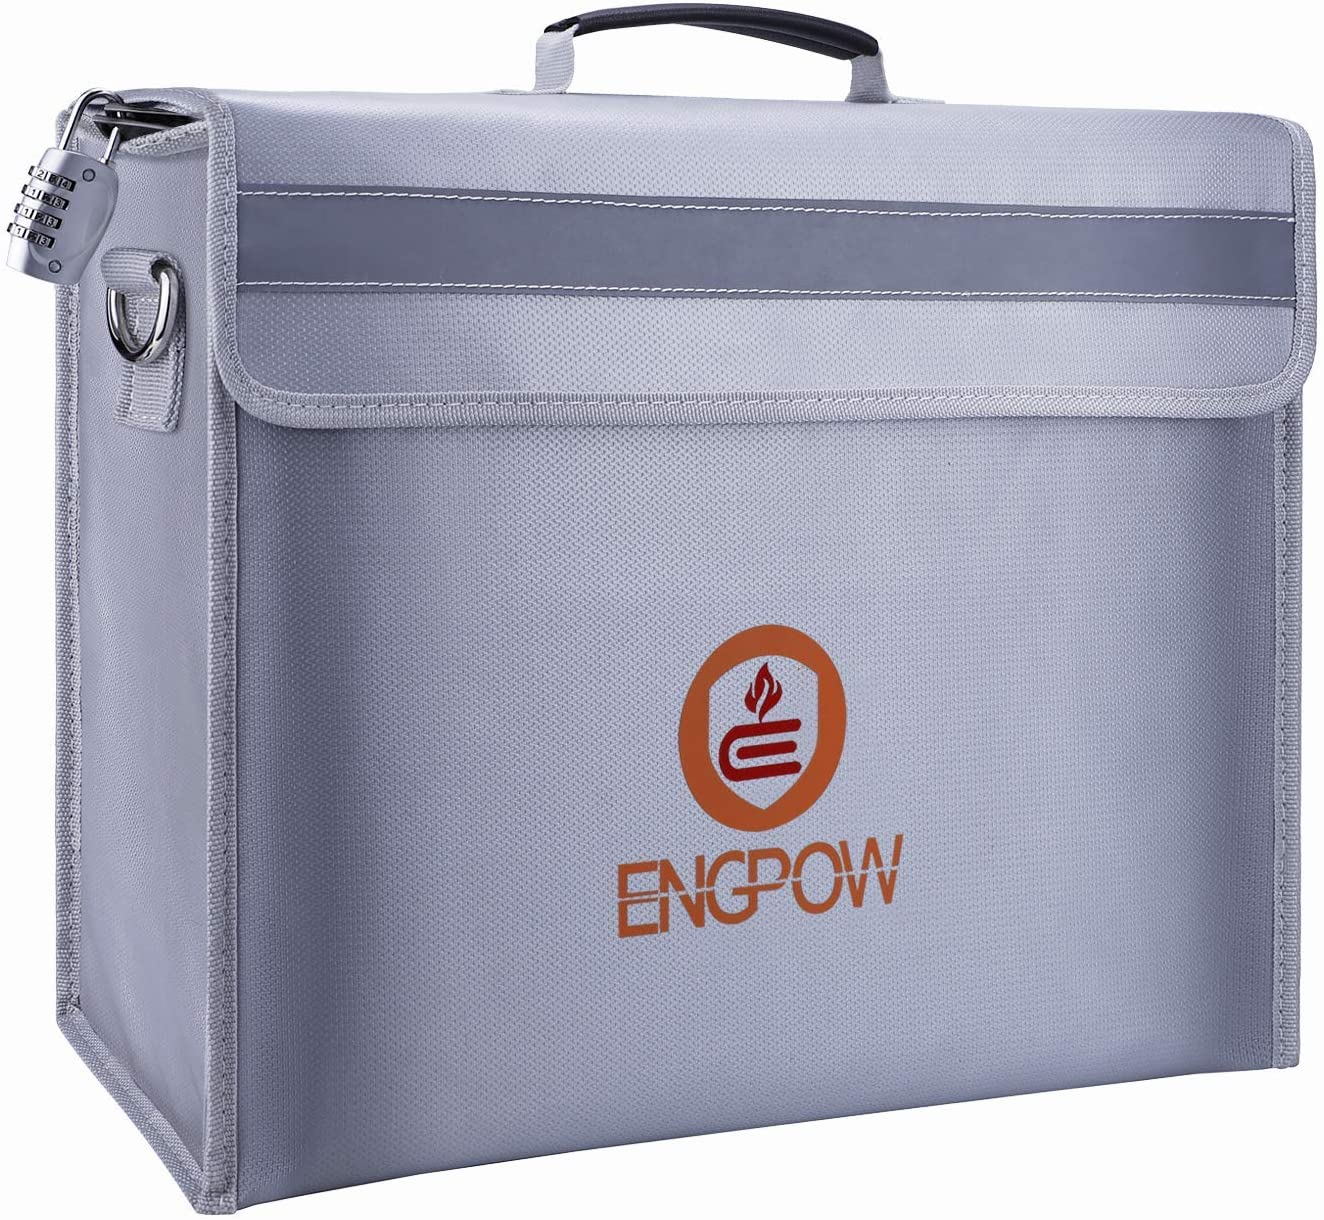 Fireproof-Lock-Box-Bag